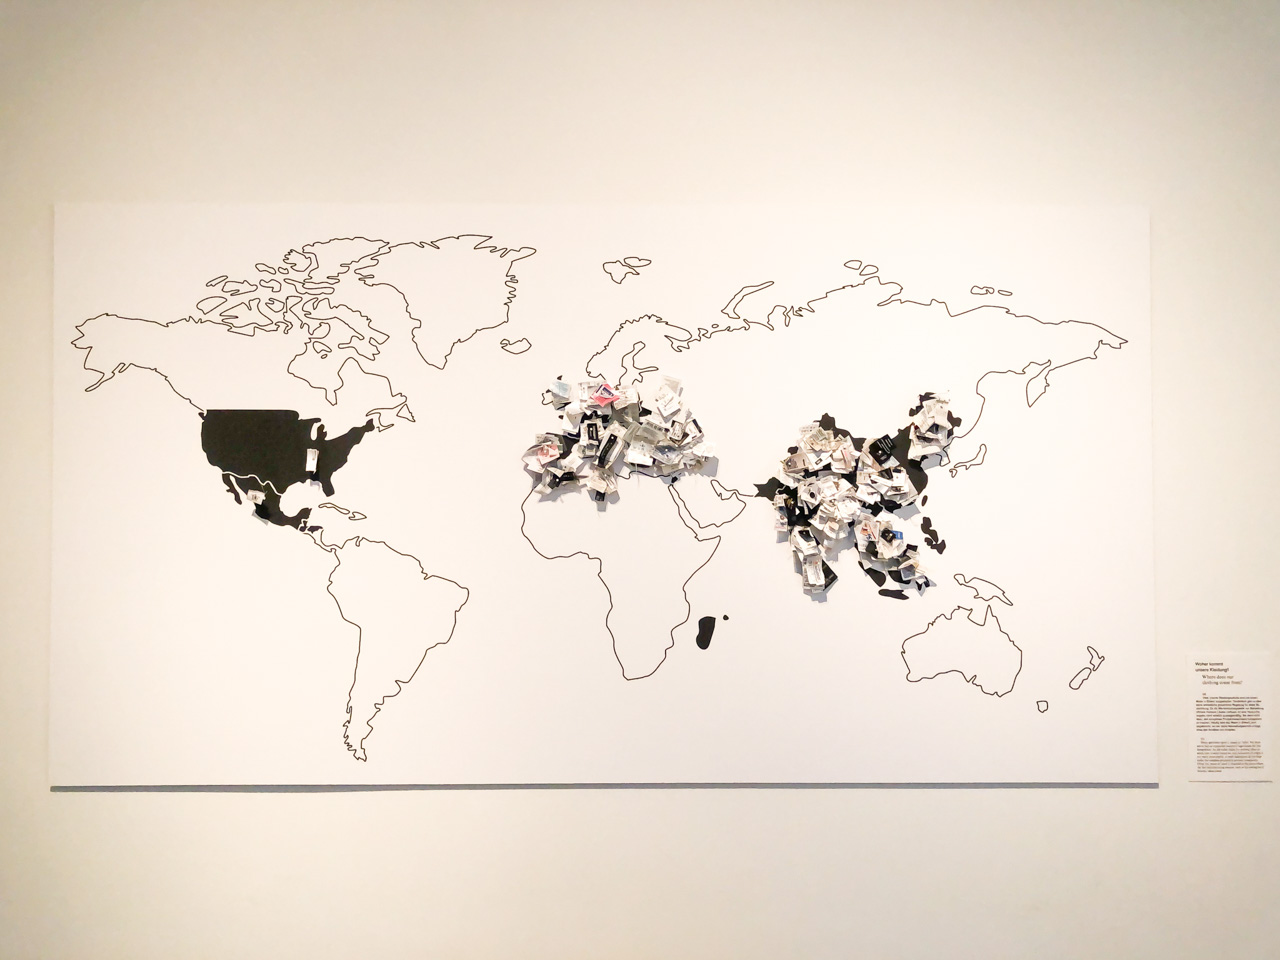 Contour world map with garment labels glued to it inside the Museum of European Cultures in Berlin